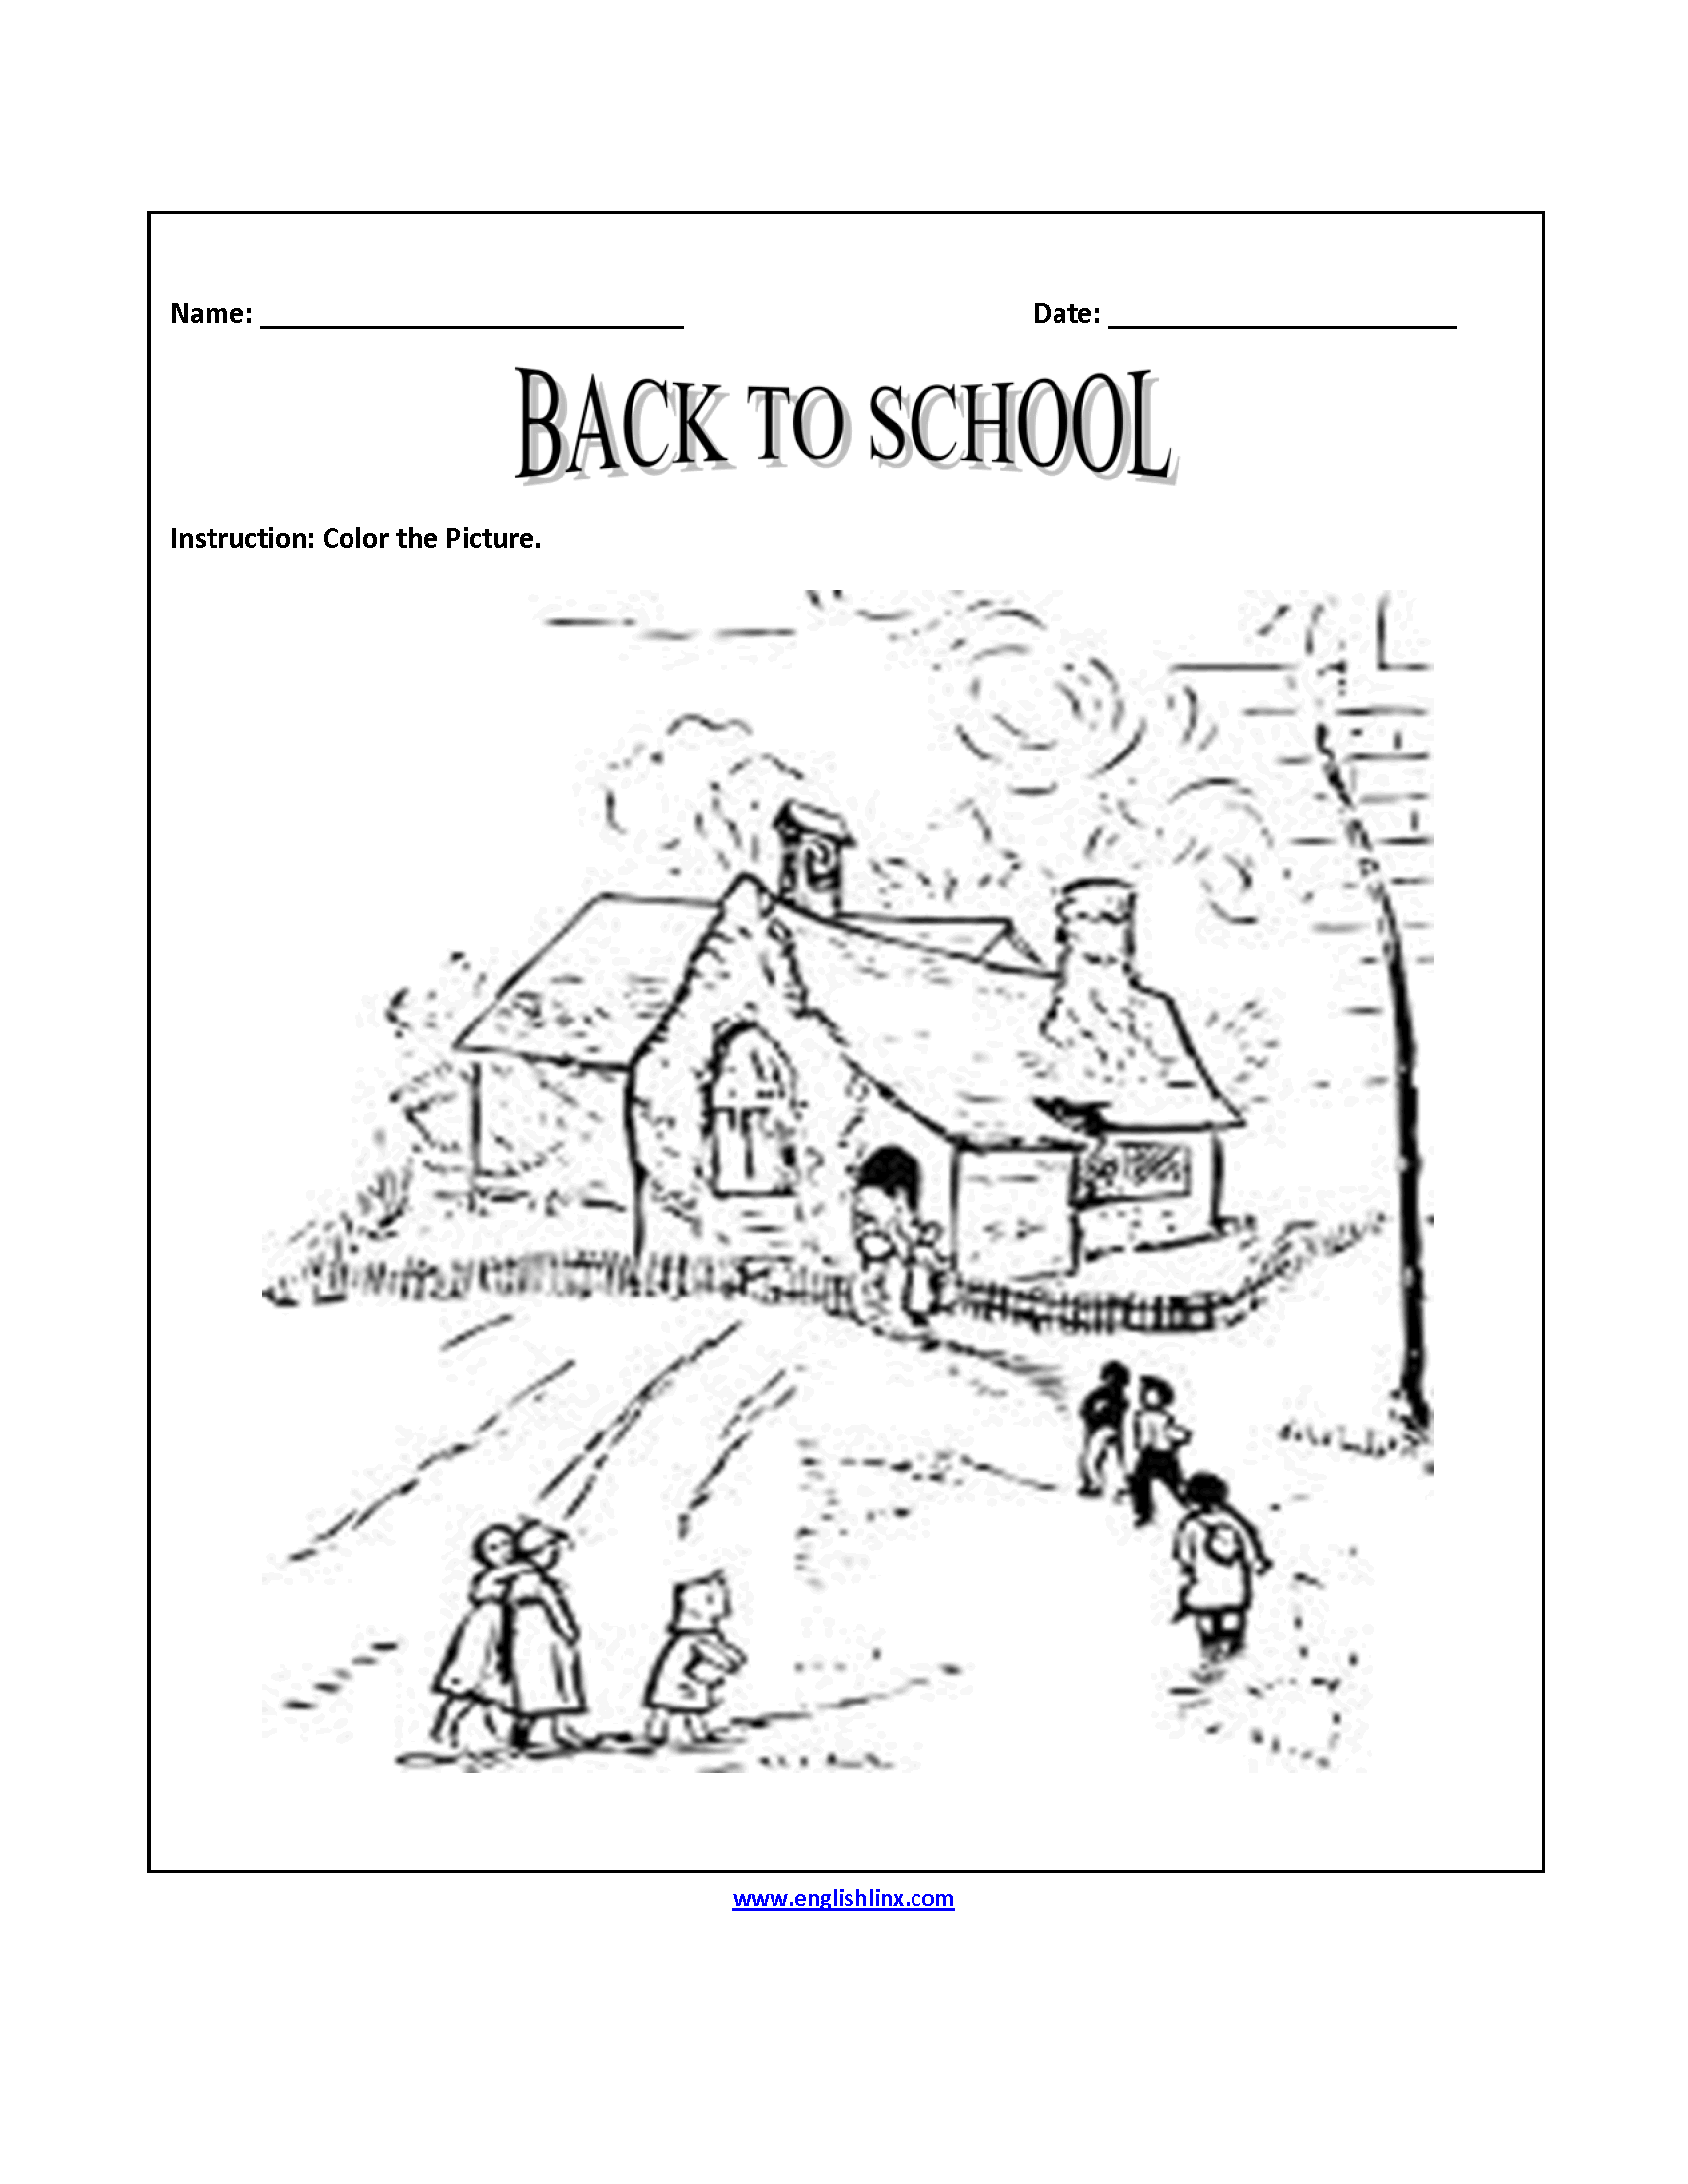 Englishlinx – Back to School Printable Worksheets